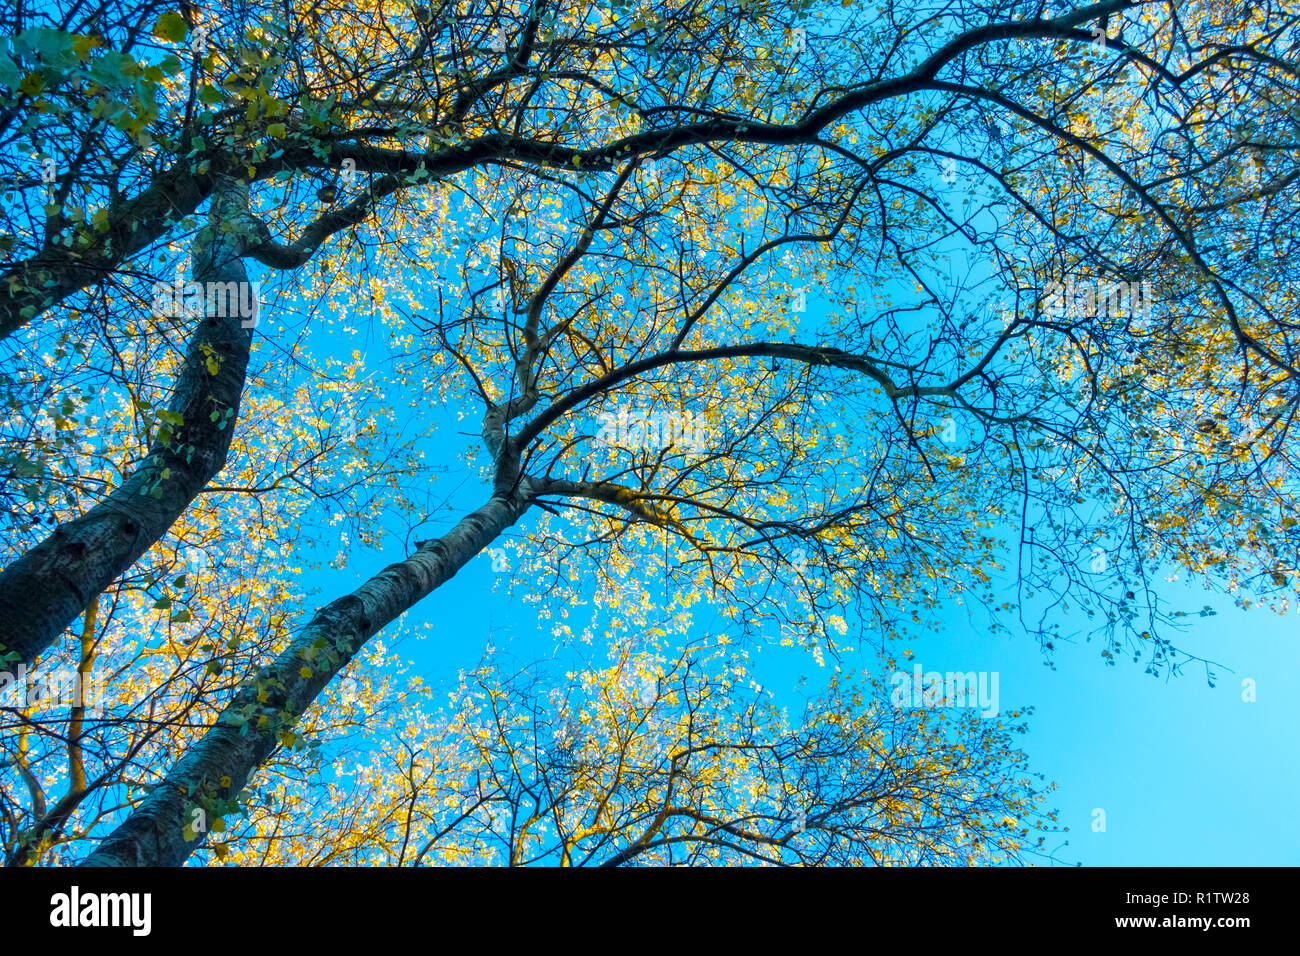 looking up at trees with golden yellow leaves against a bright blue sky. Consett, County Durham, UK - Stock Image